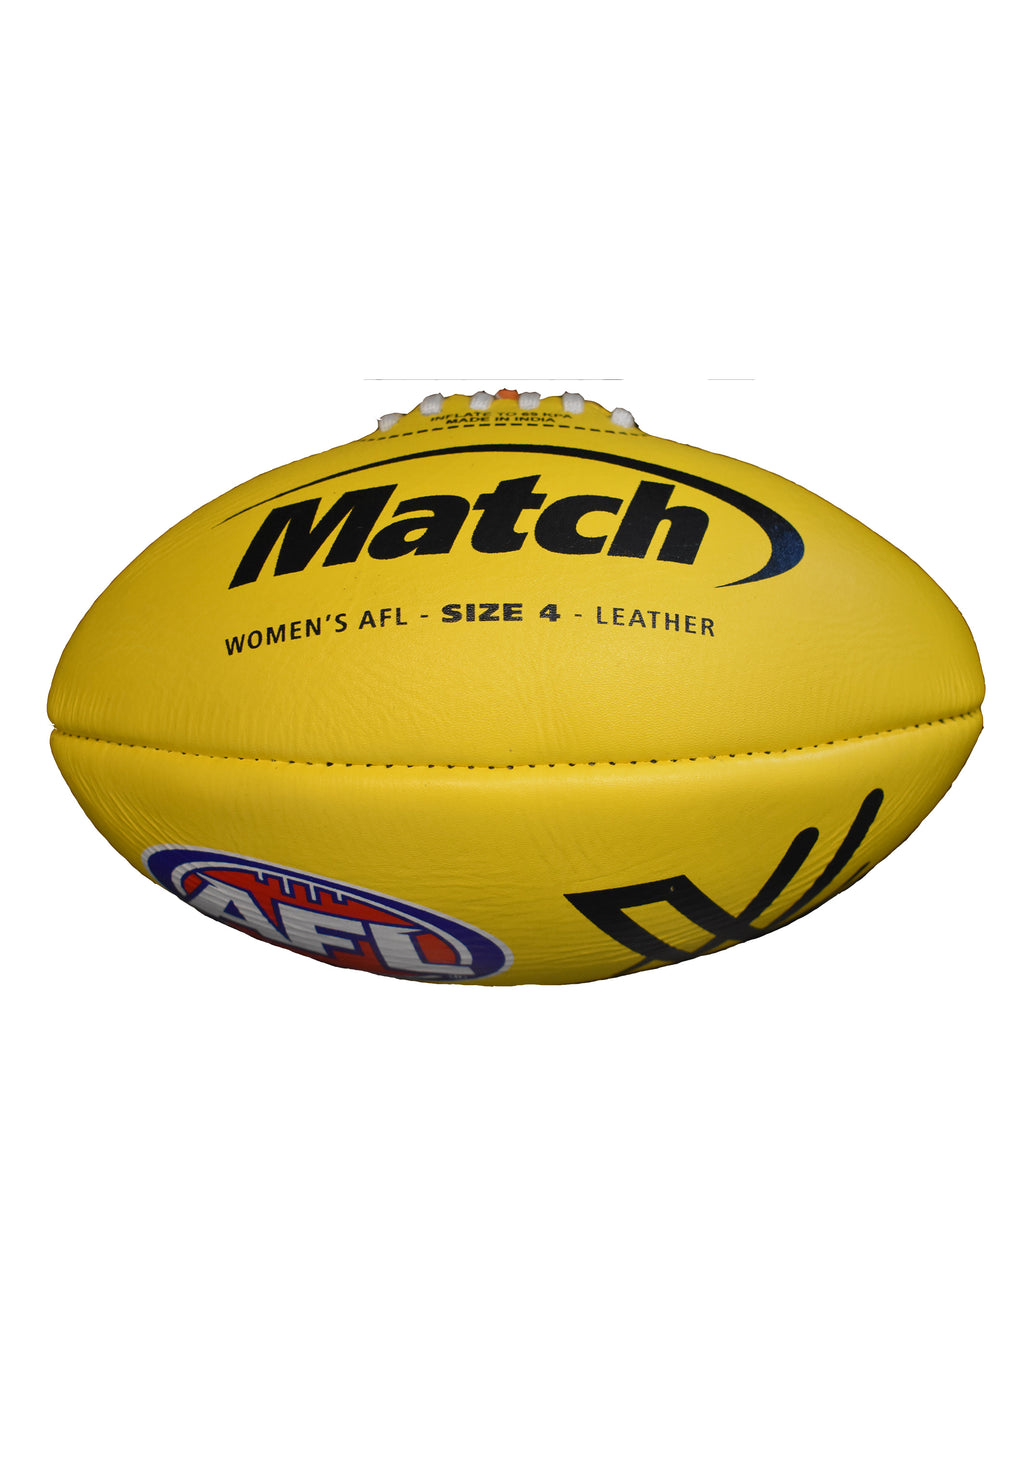 BURLEY WOMENS AFL MATCH FOOTBALL (SIZE 4)